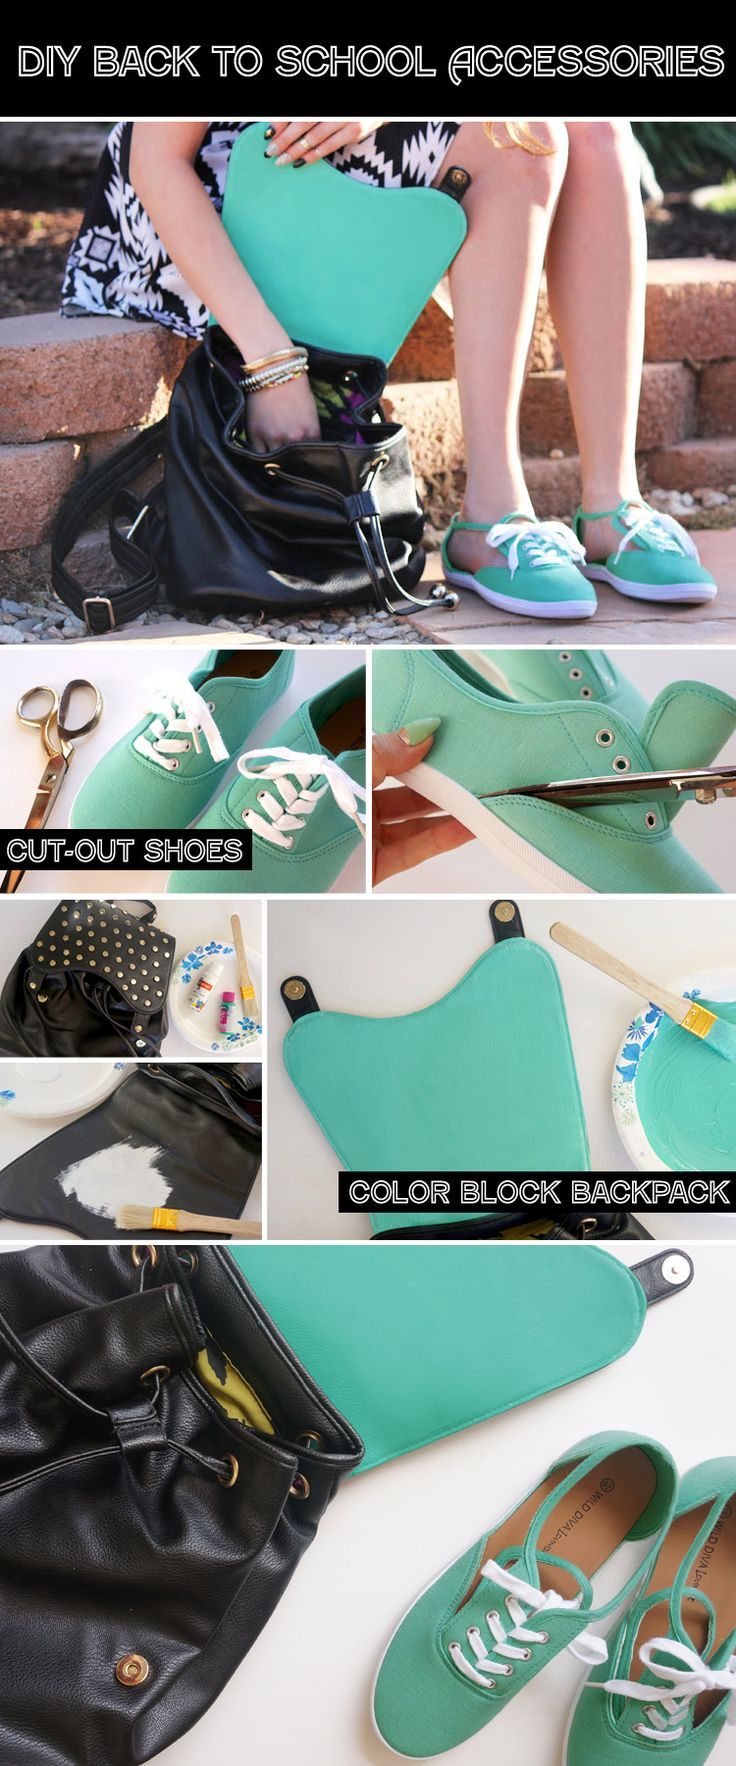 Do It Yourself: Fashionable Ideas